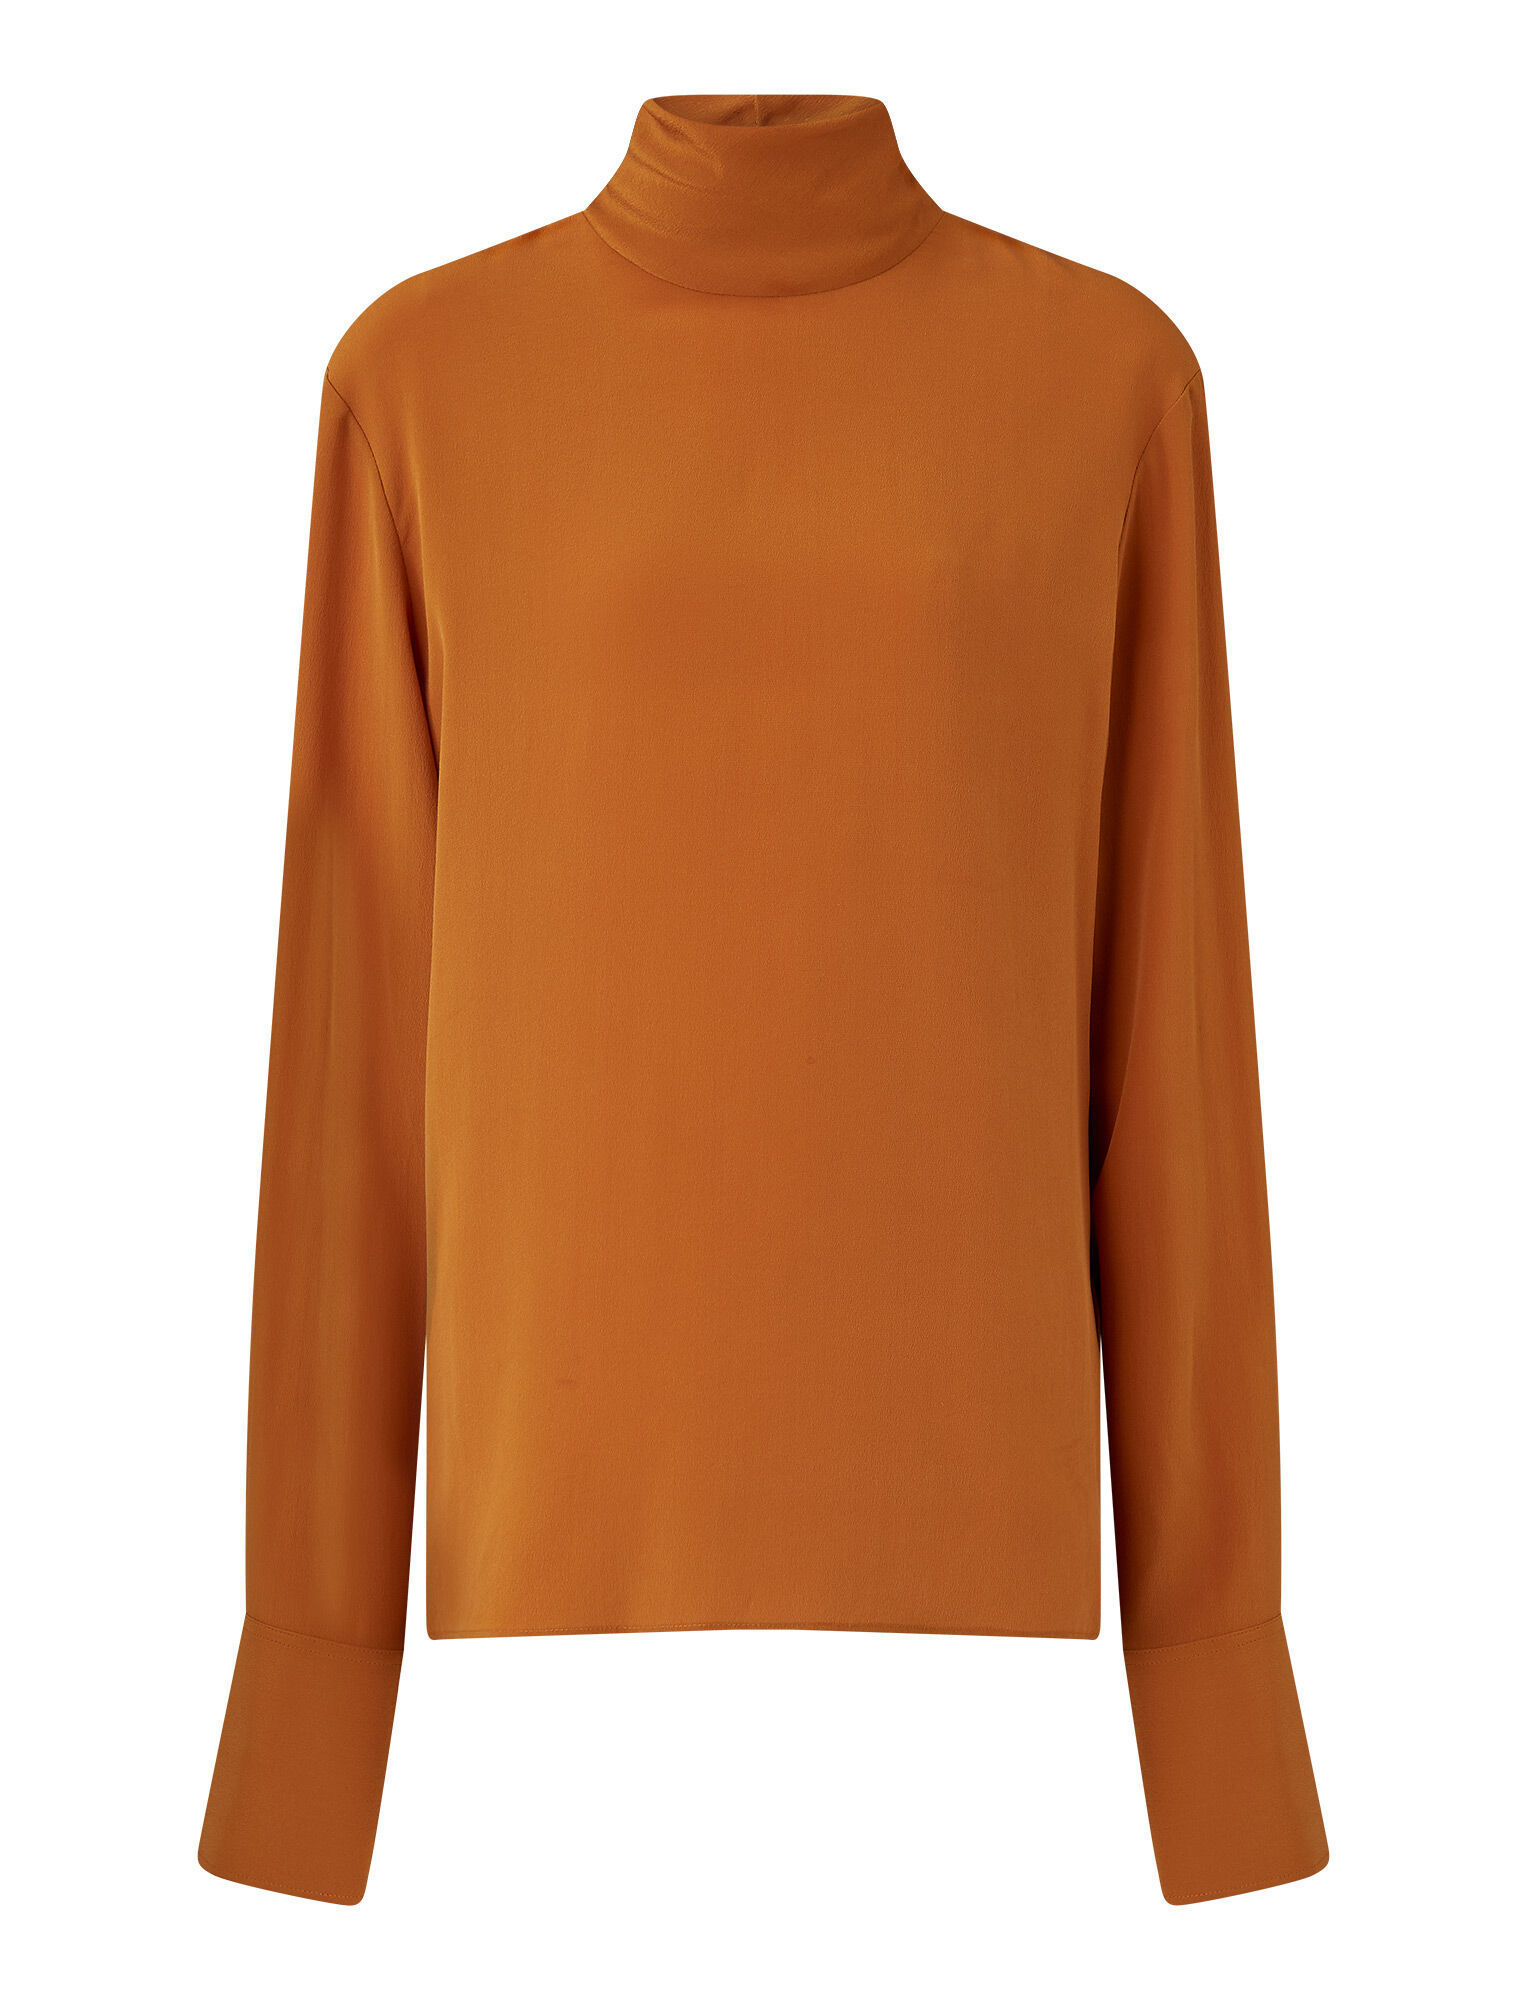 Joseph, Biva Crepe De Chine Blouse, in Fox